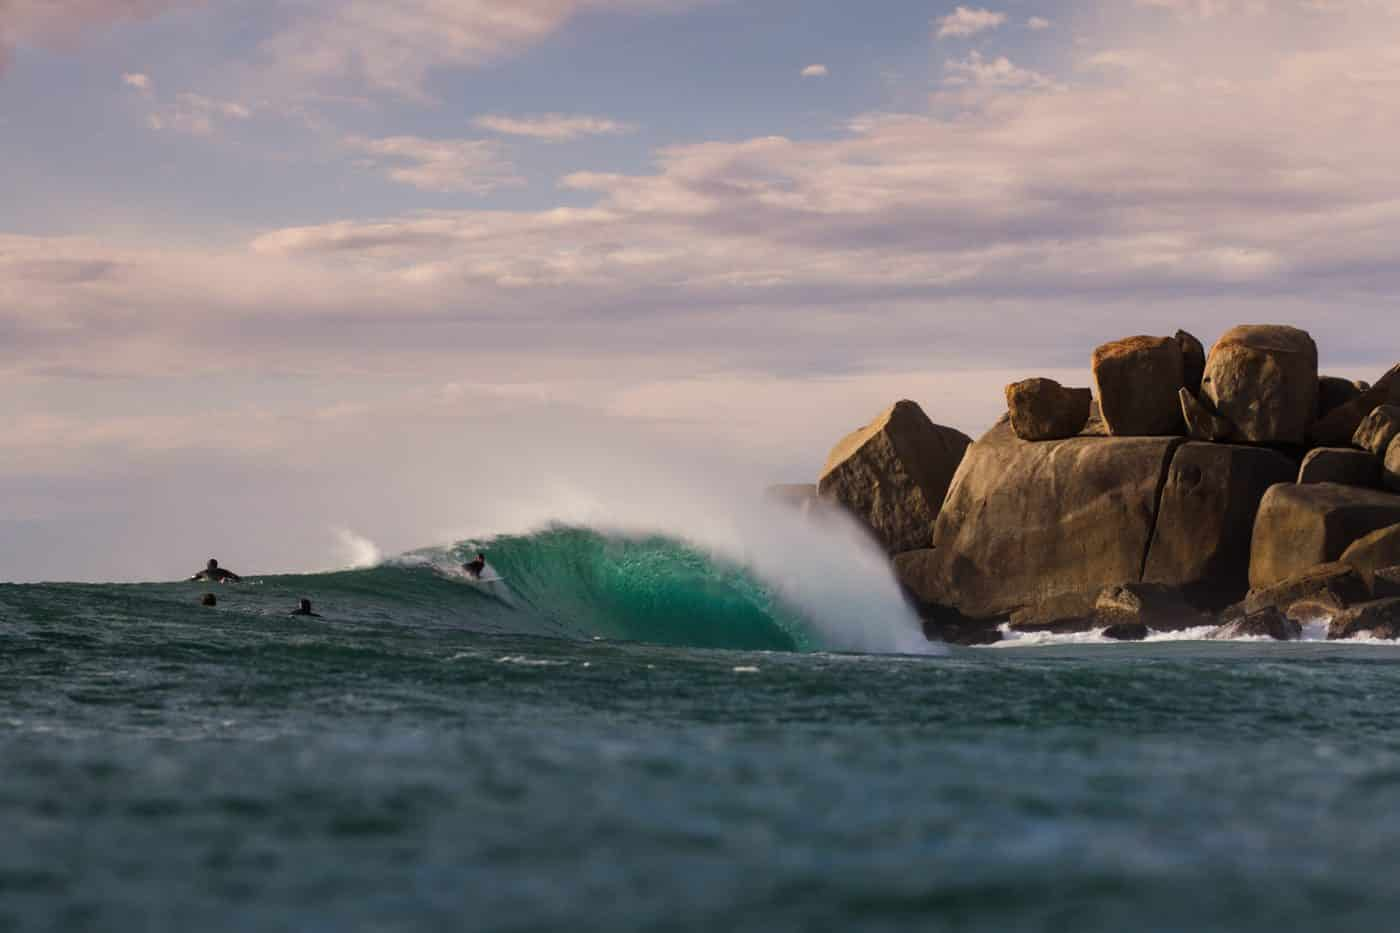 Surf Guide photo by Simon Heale featured on South Africa Surf Tours website